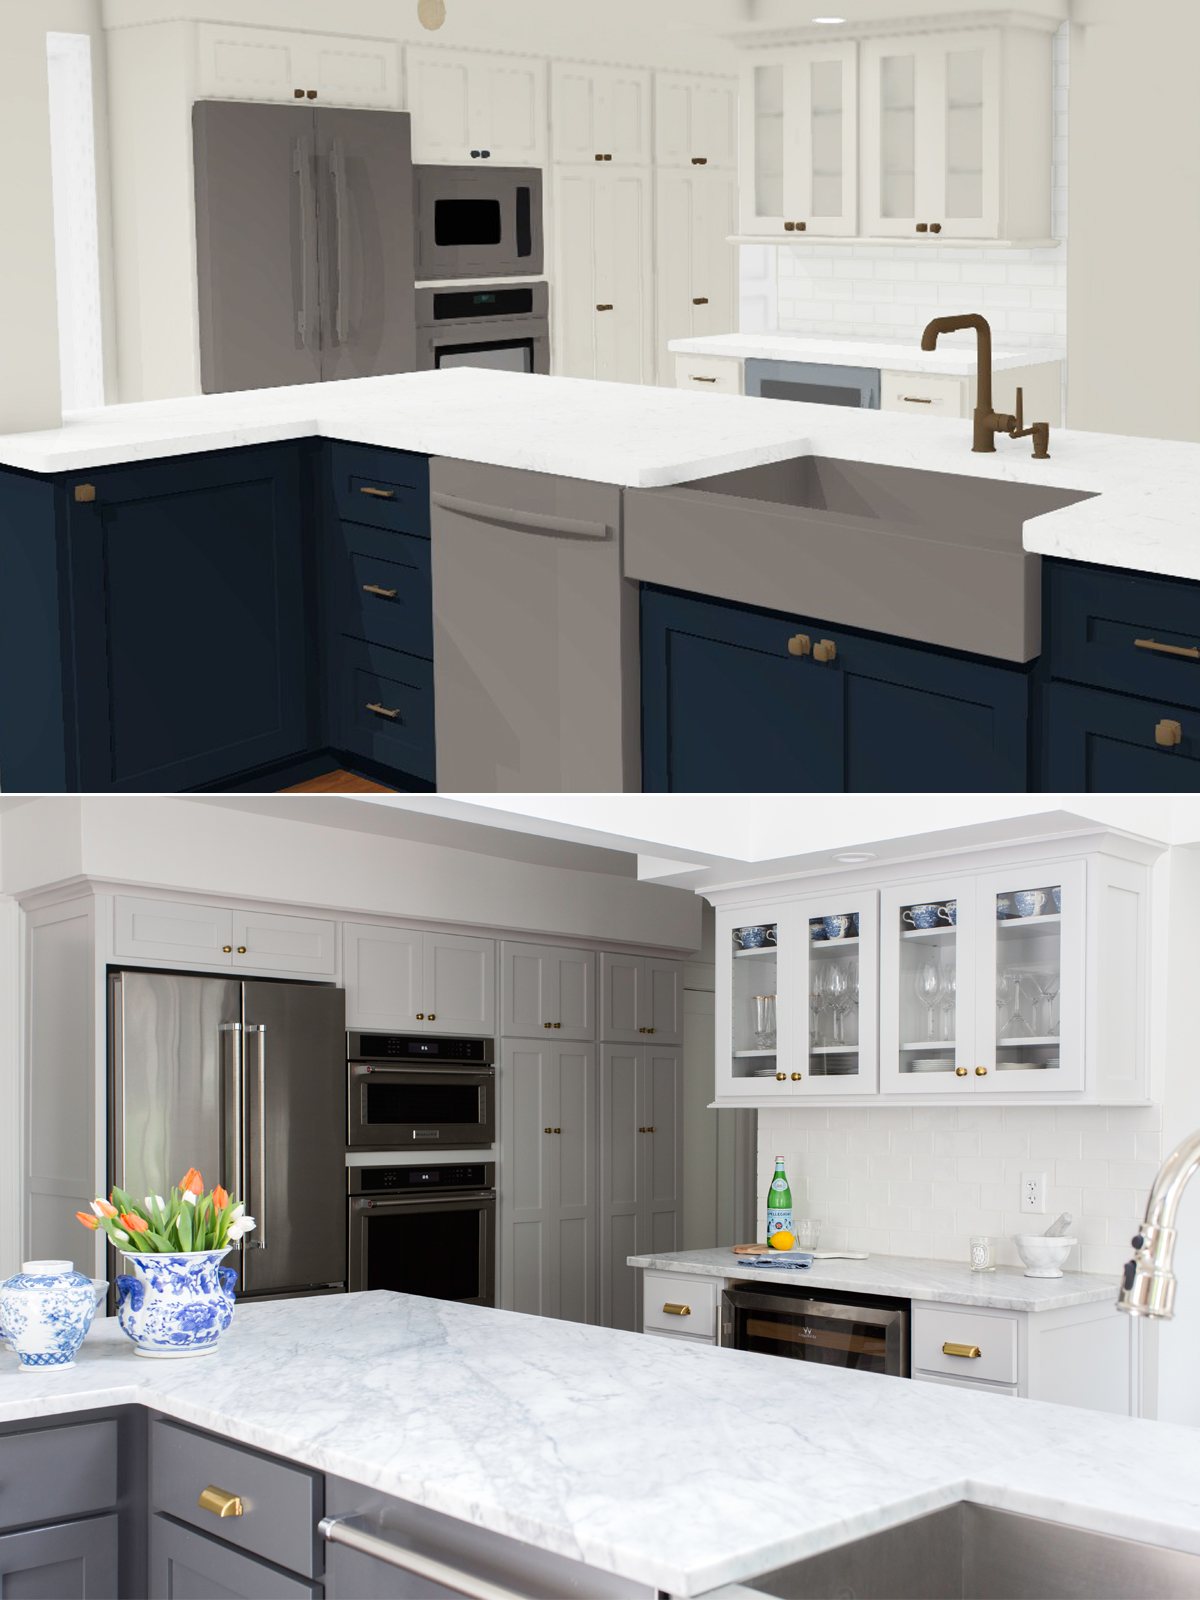 kitchen rendering and after shot in brookside scovell remodeled kitchen